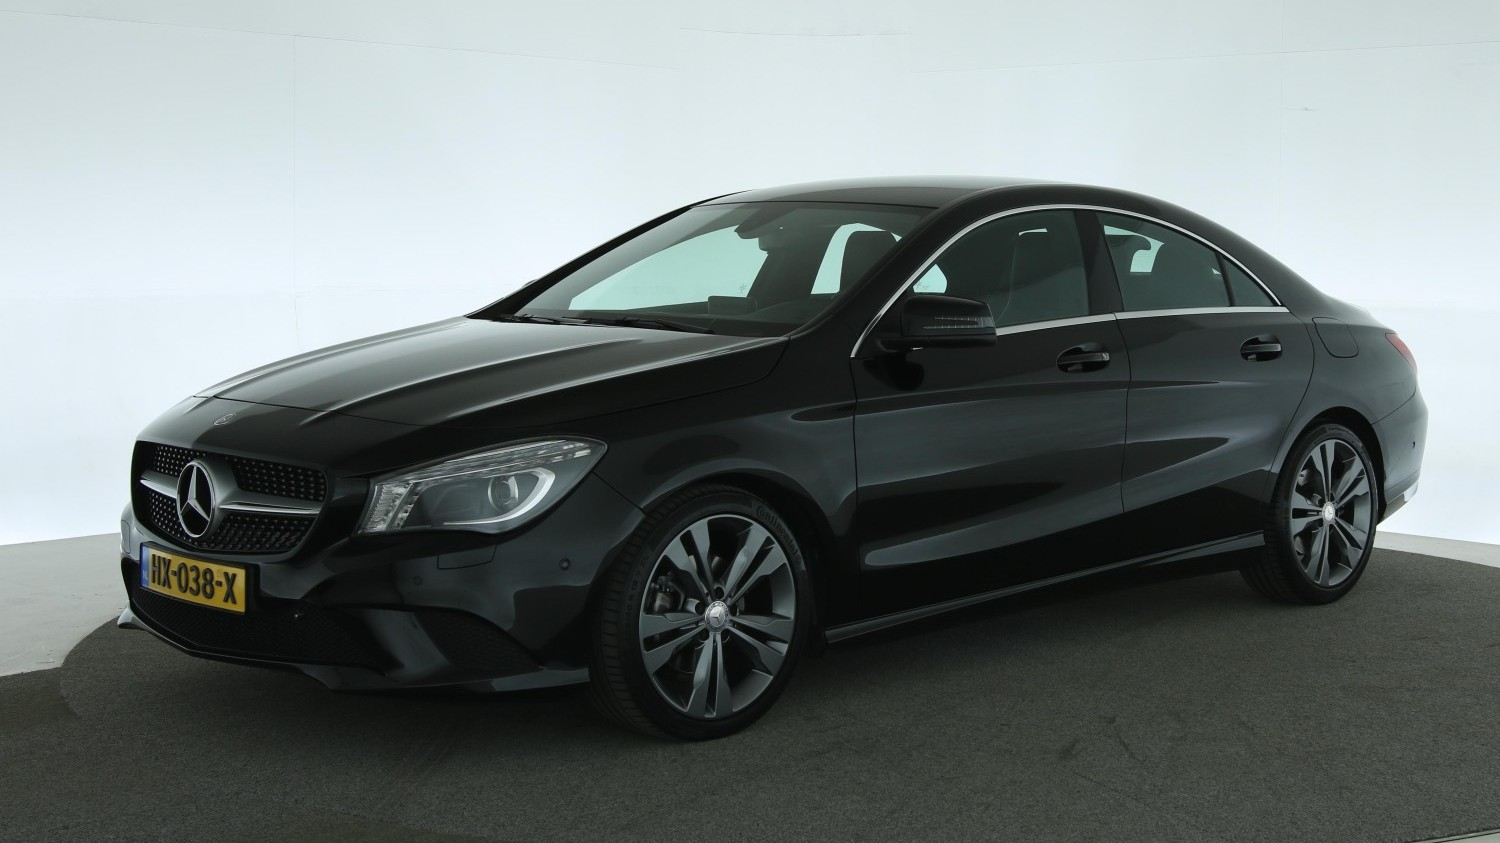 Mercedes-Benz CLA-klasse Sedan 2016 HX-038-X 1